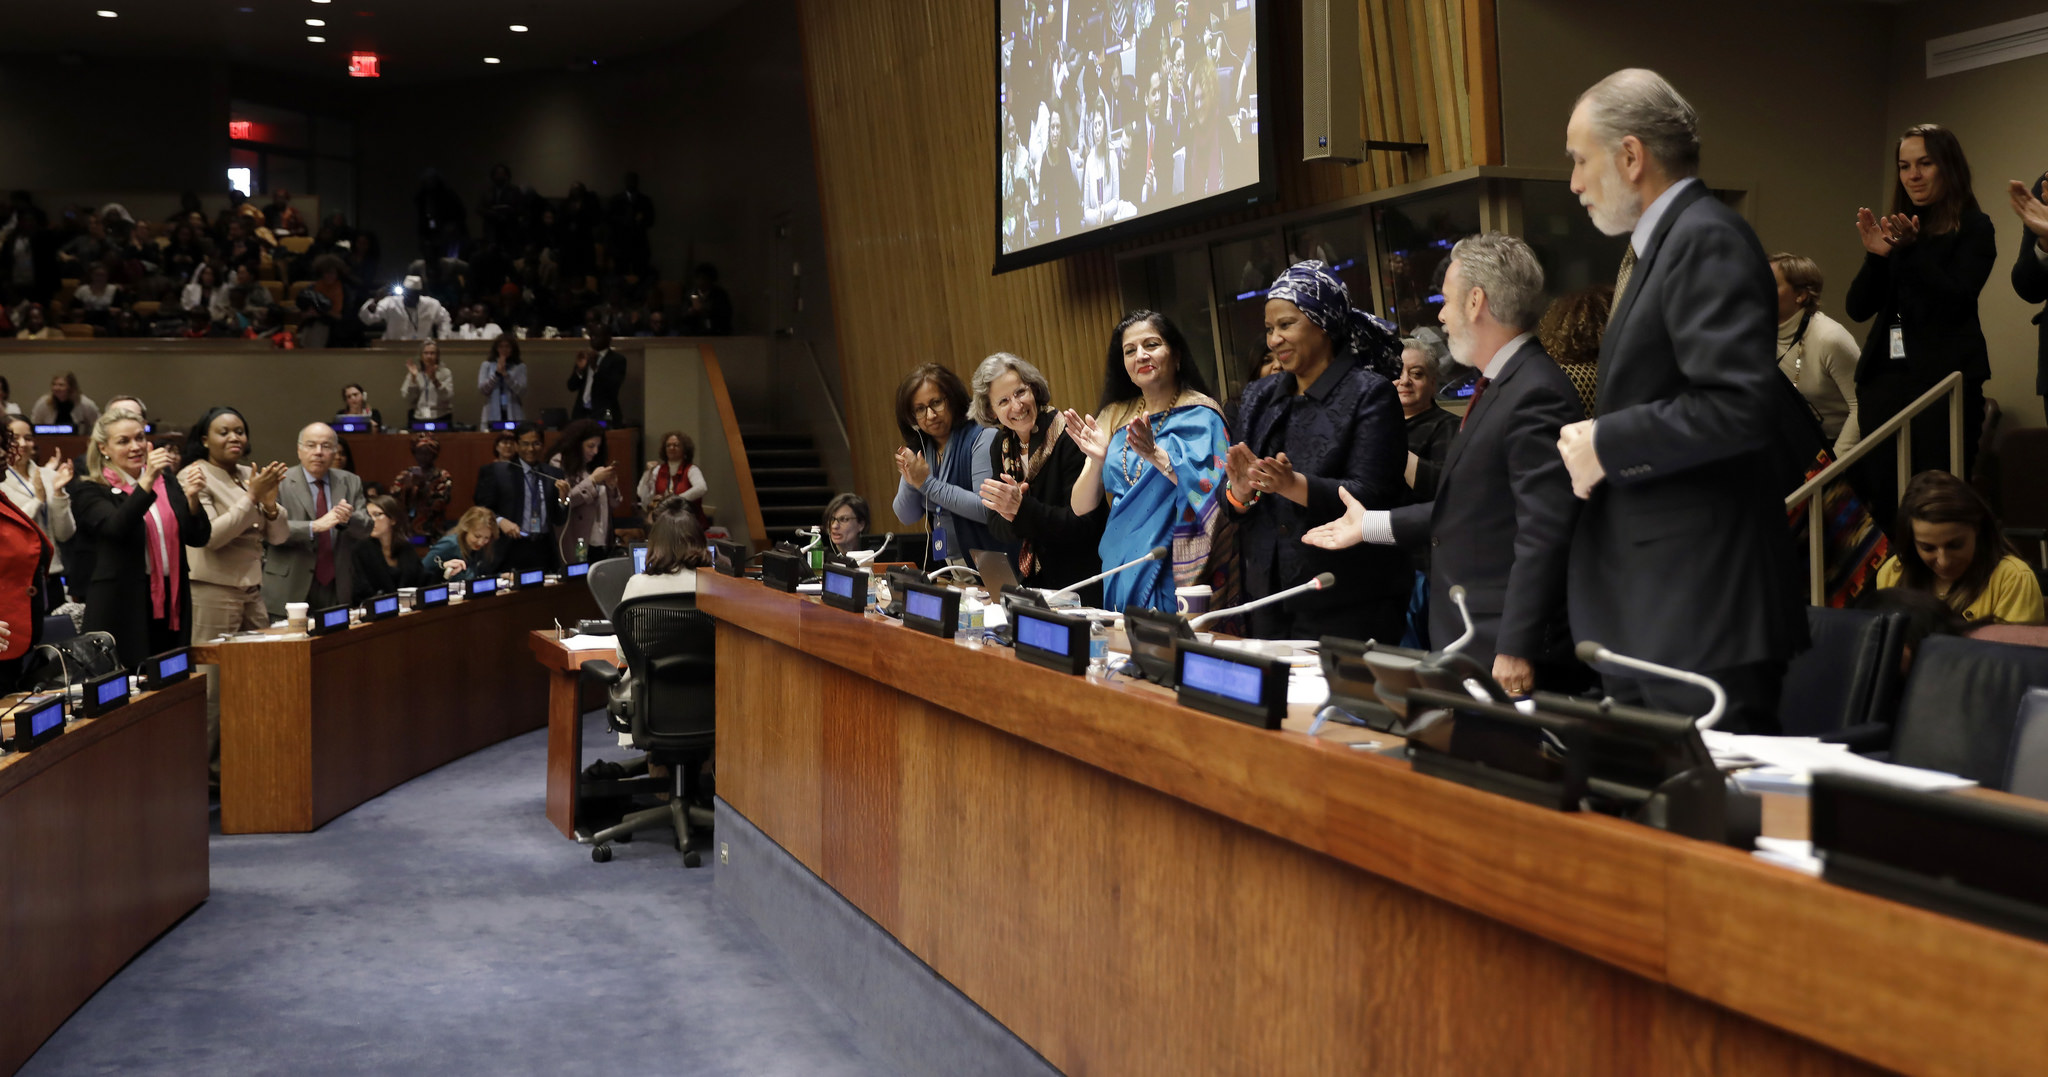 Copy of csw61-nyc.jpg